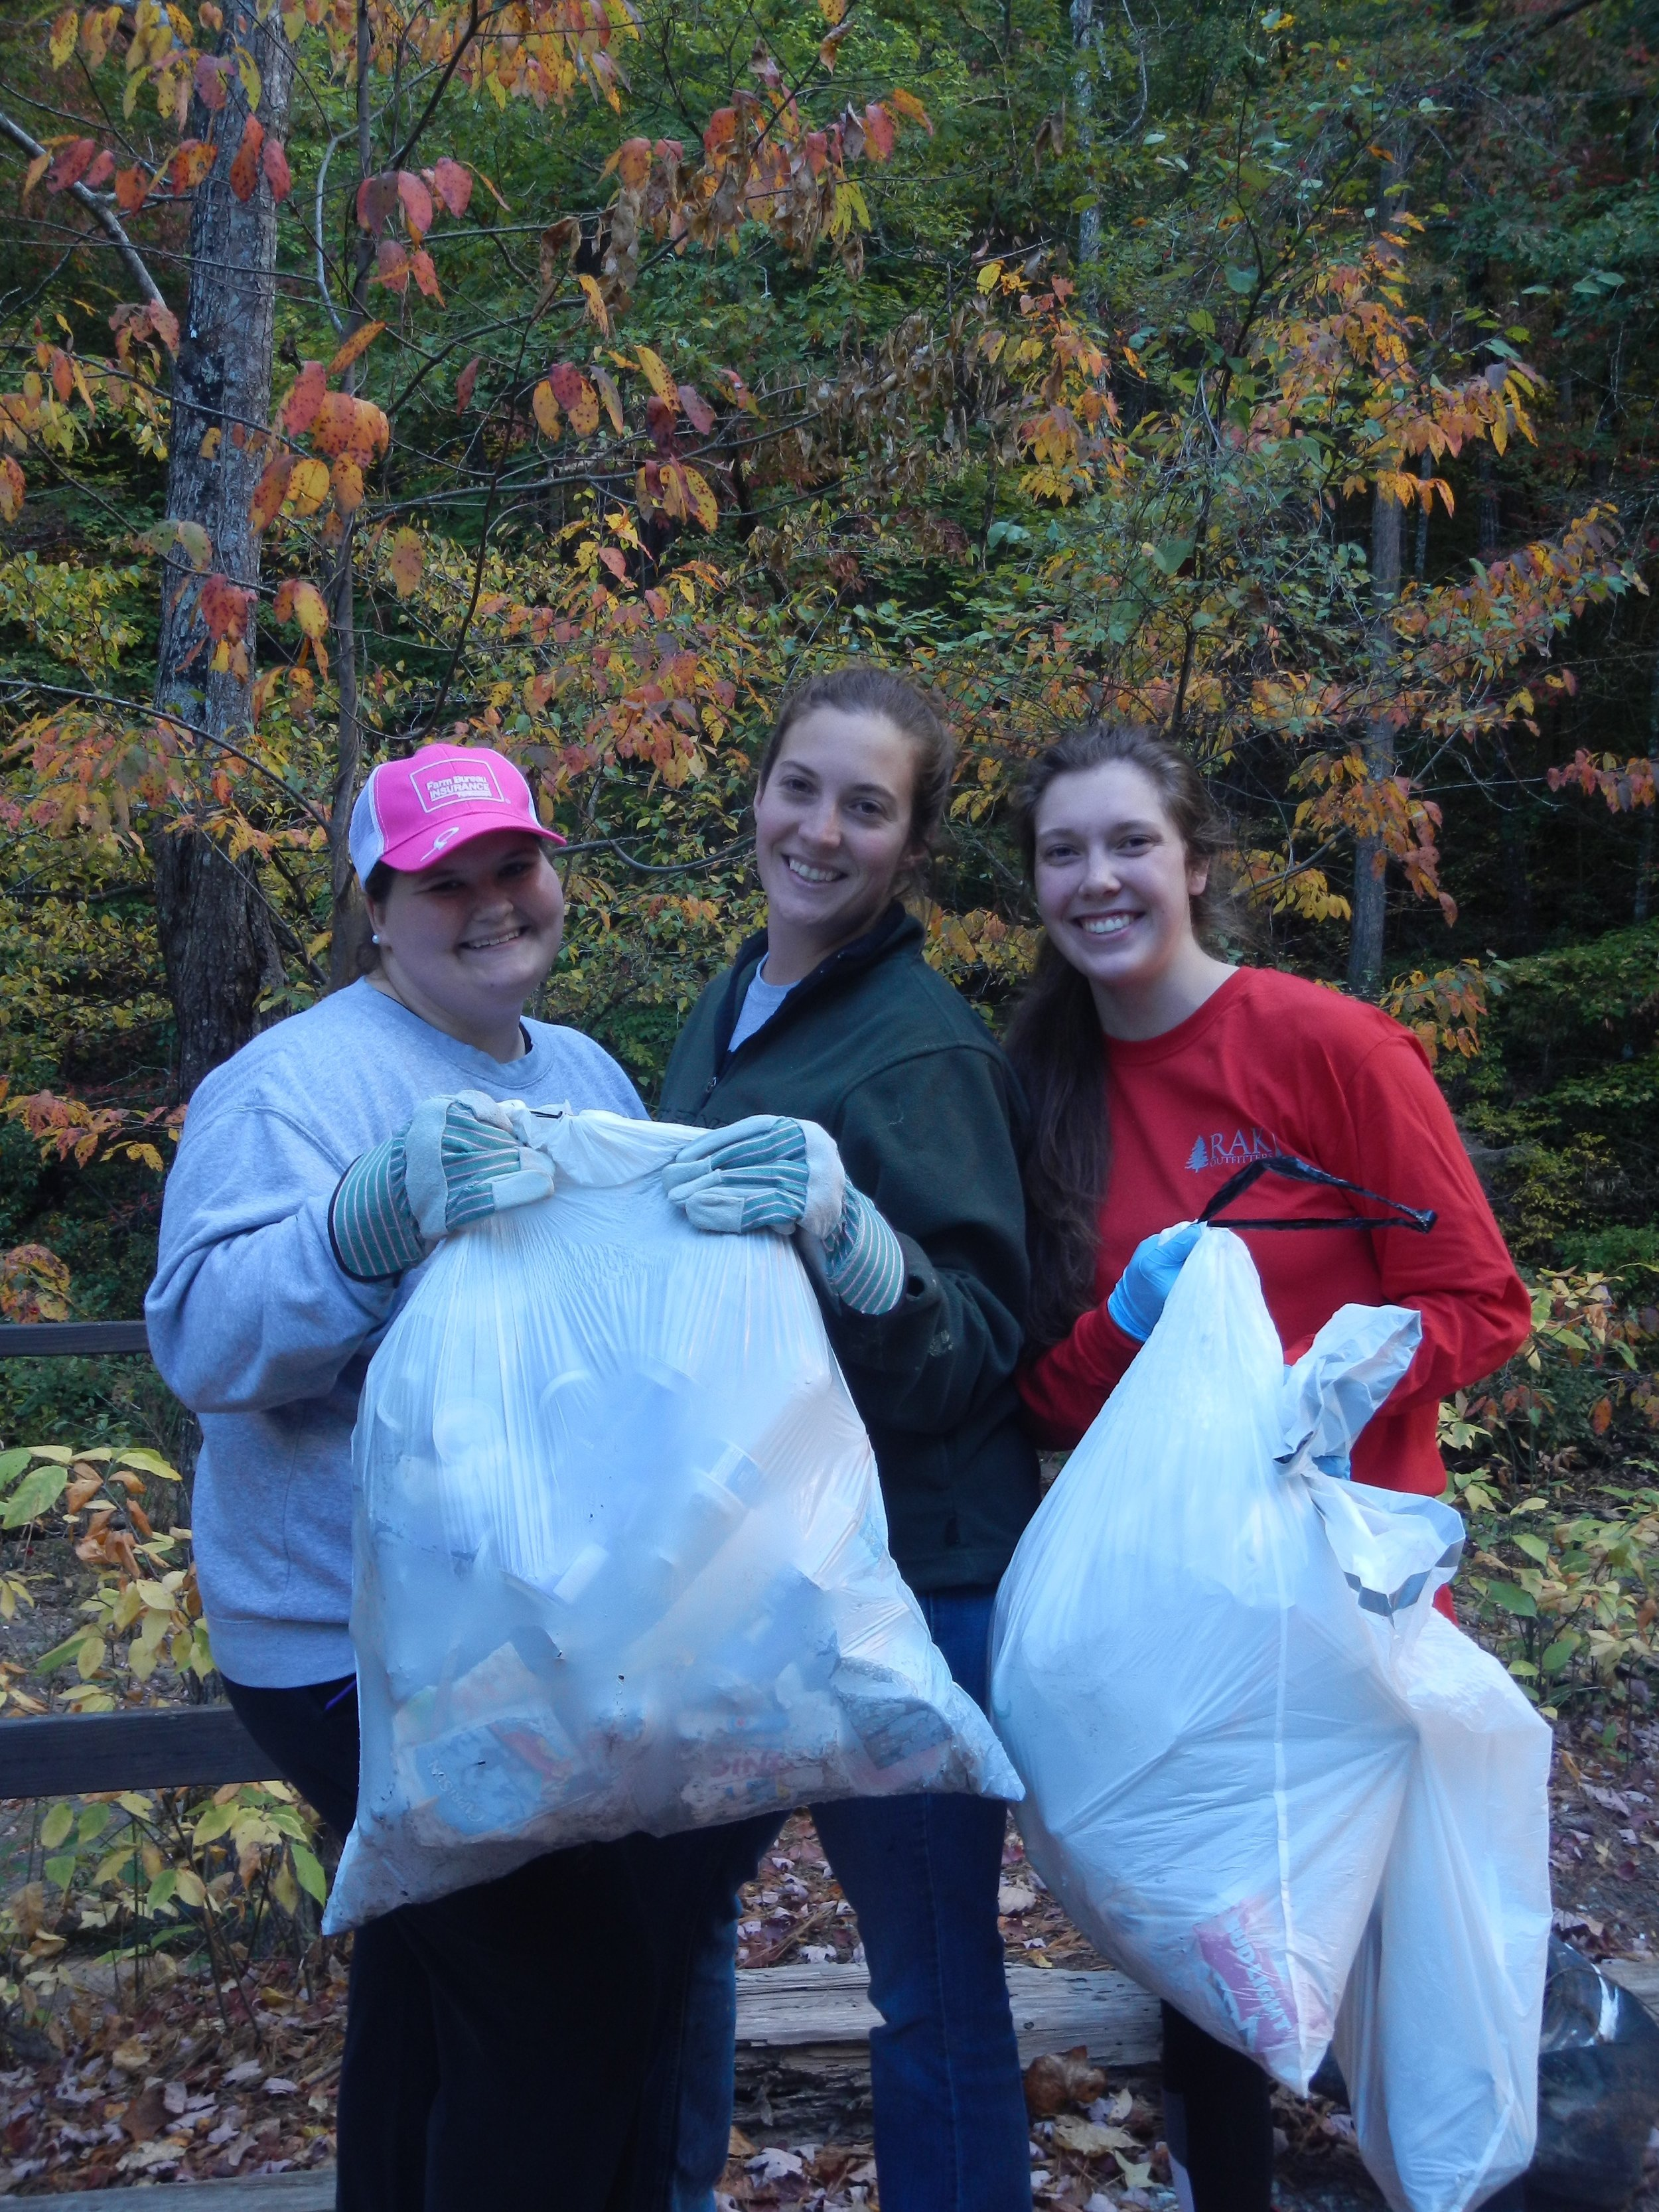 Pictured are only a few of the 35 volunteers that helped to remove litter at Holly Creek in Murray County during the 2016 Conasauga River Watershed Cleanup event.